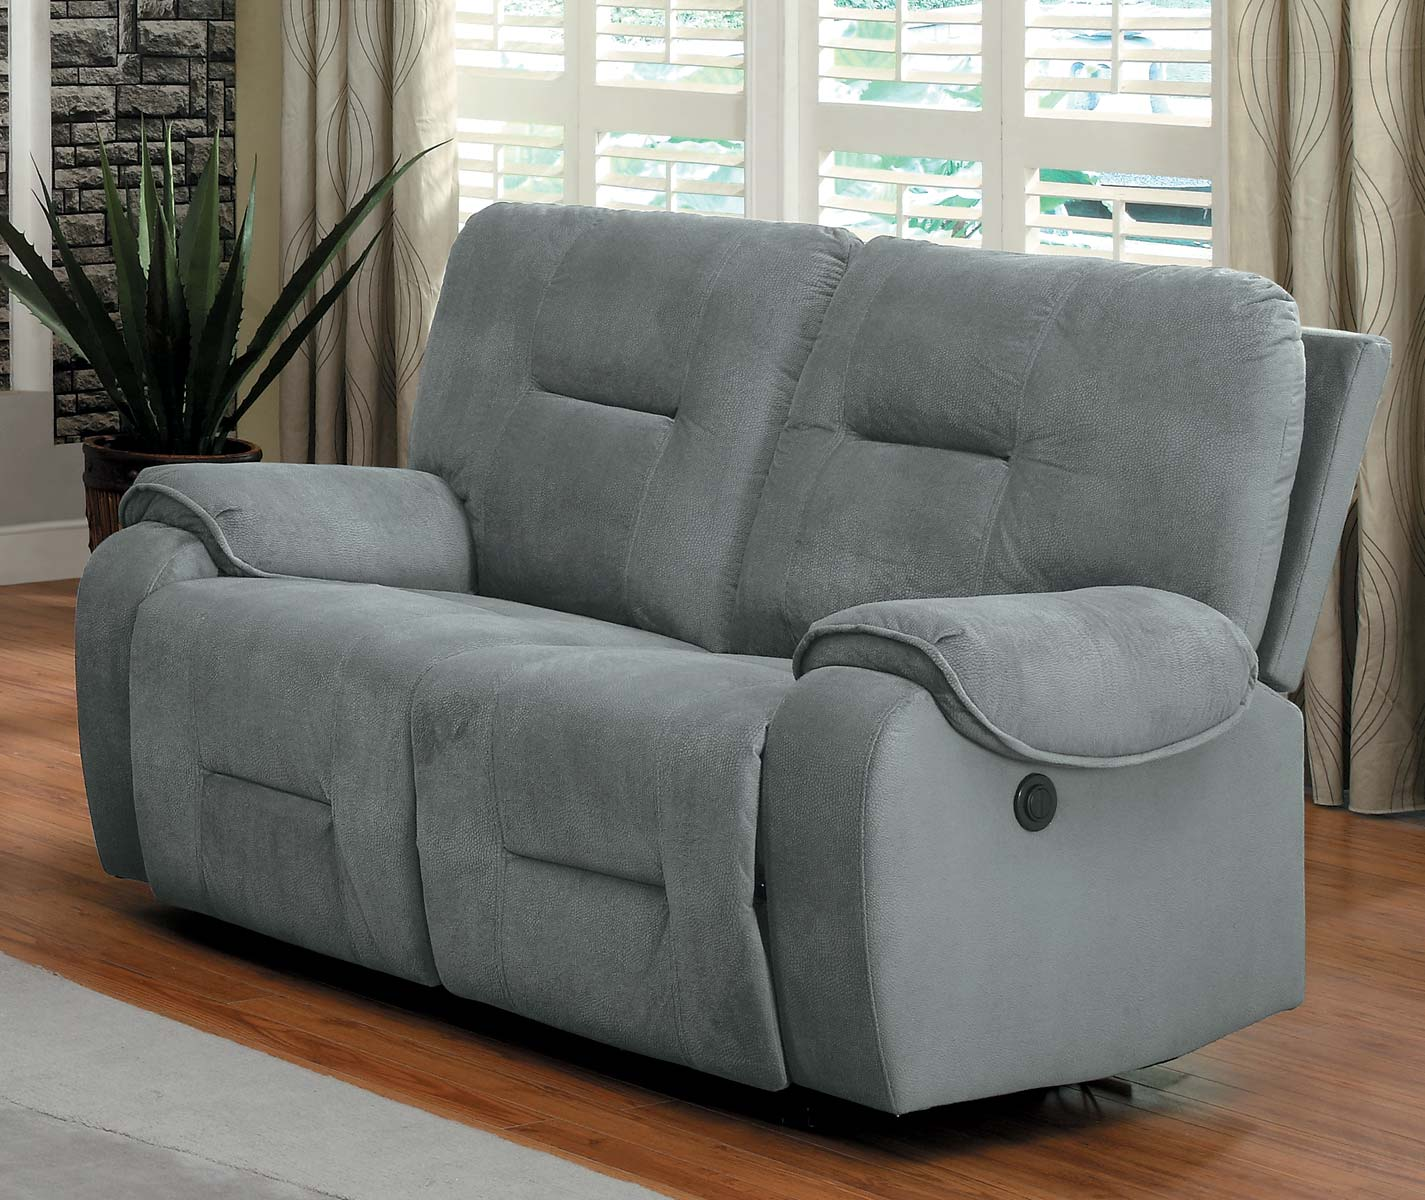 Homelegance Bensonhurst Power Double Reclining Love Seat - Blue Grey - Textured Micro Fiber